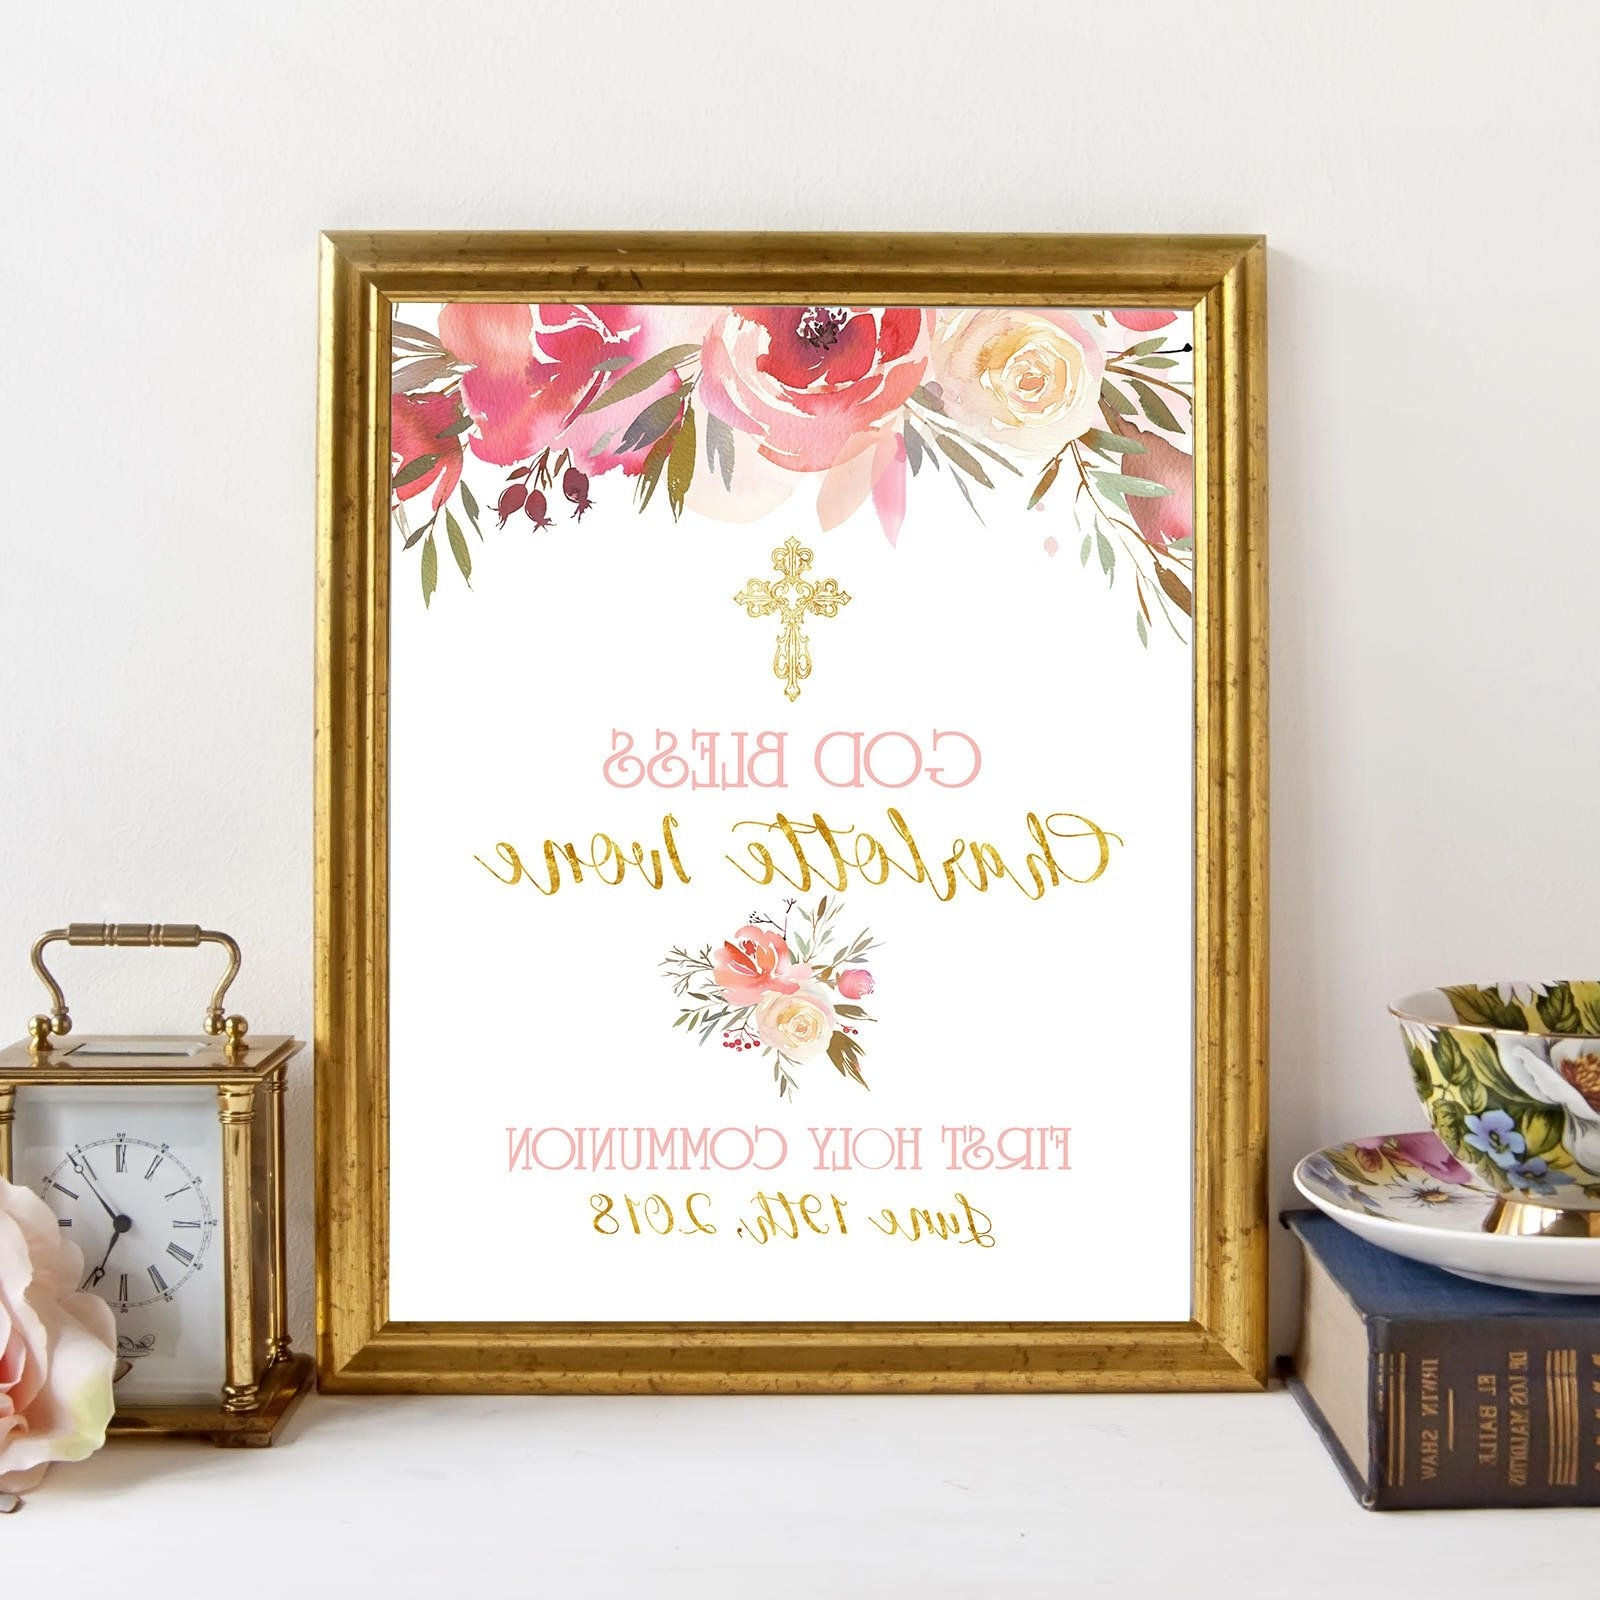 Personalized Wall Art With Latest Personalized Wall Art Calligraphy For A First Holy Communion,first (View 11 of 15)